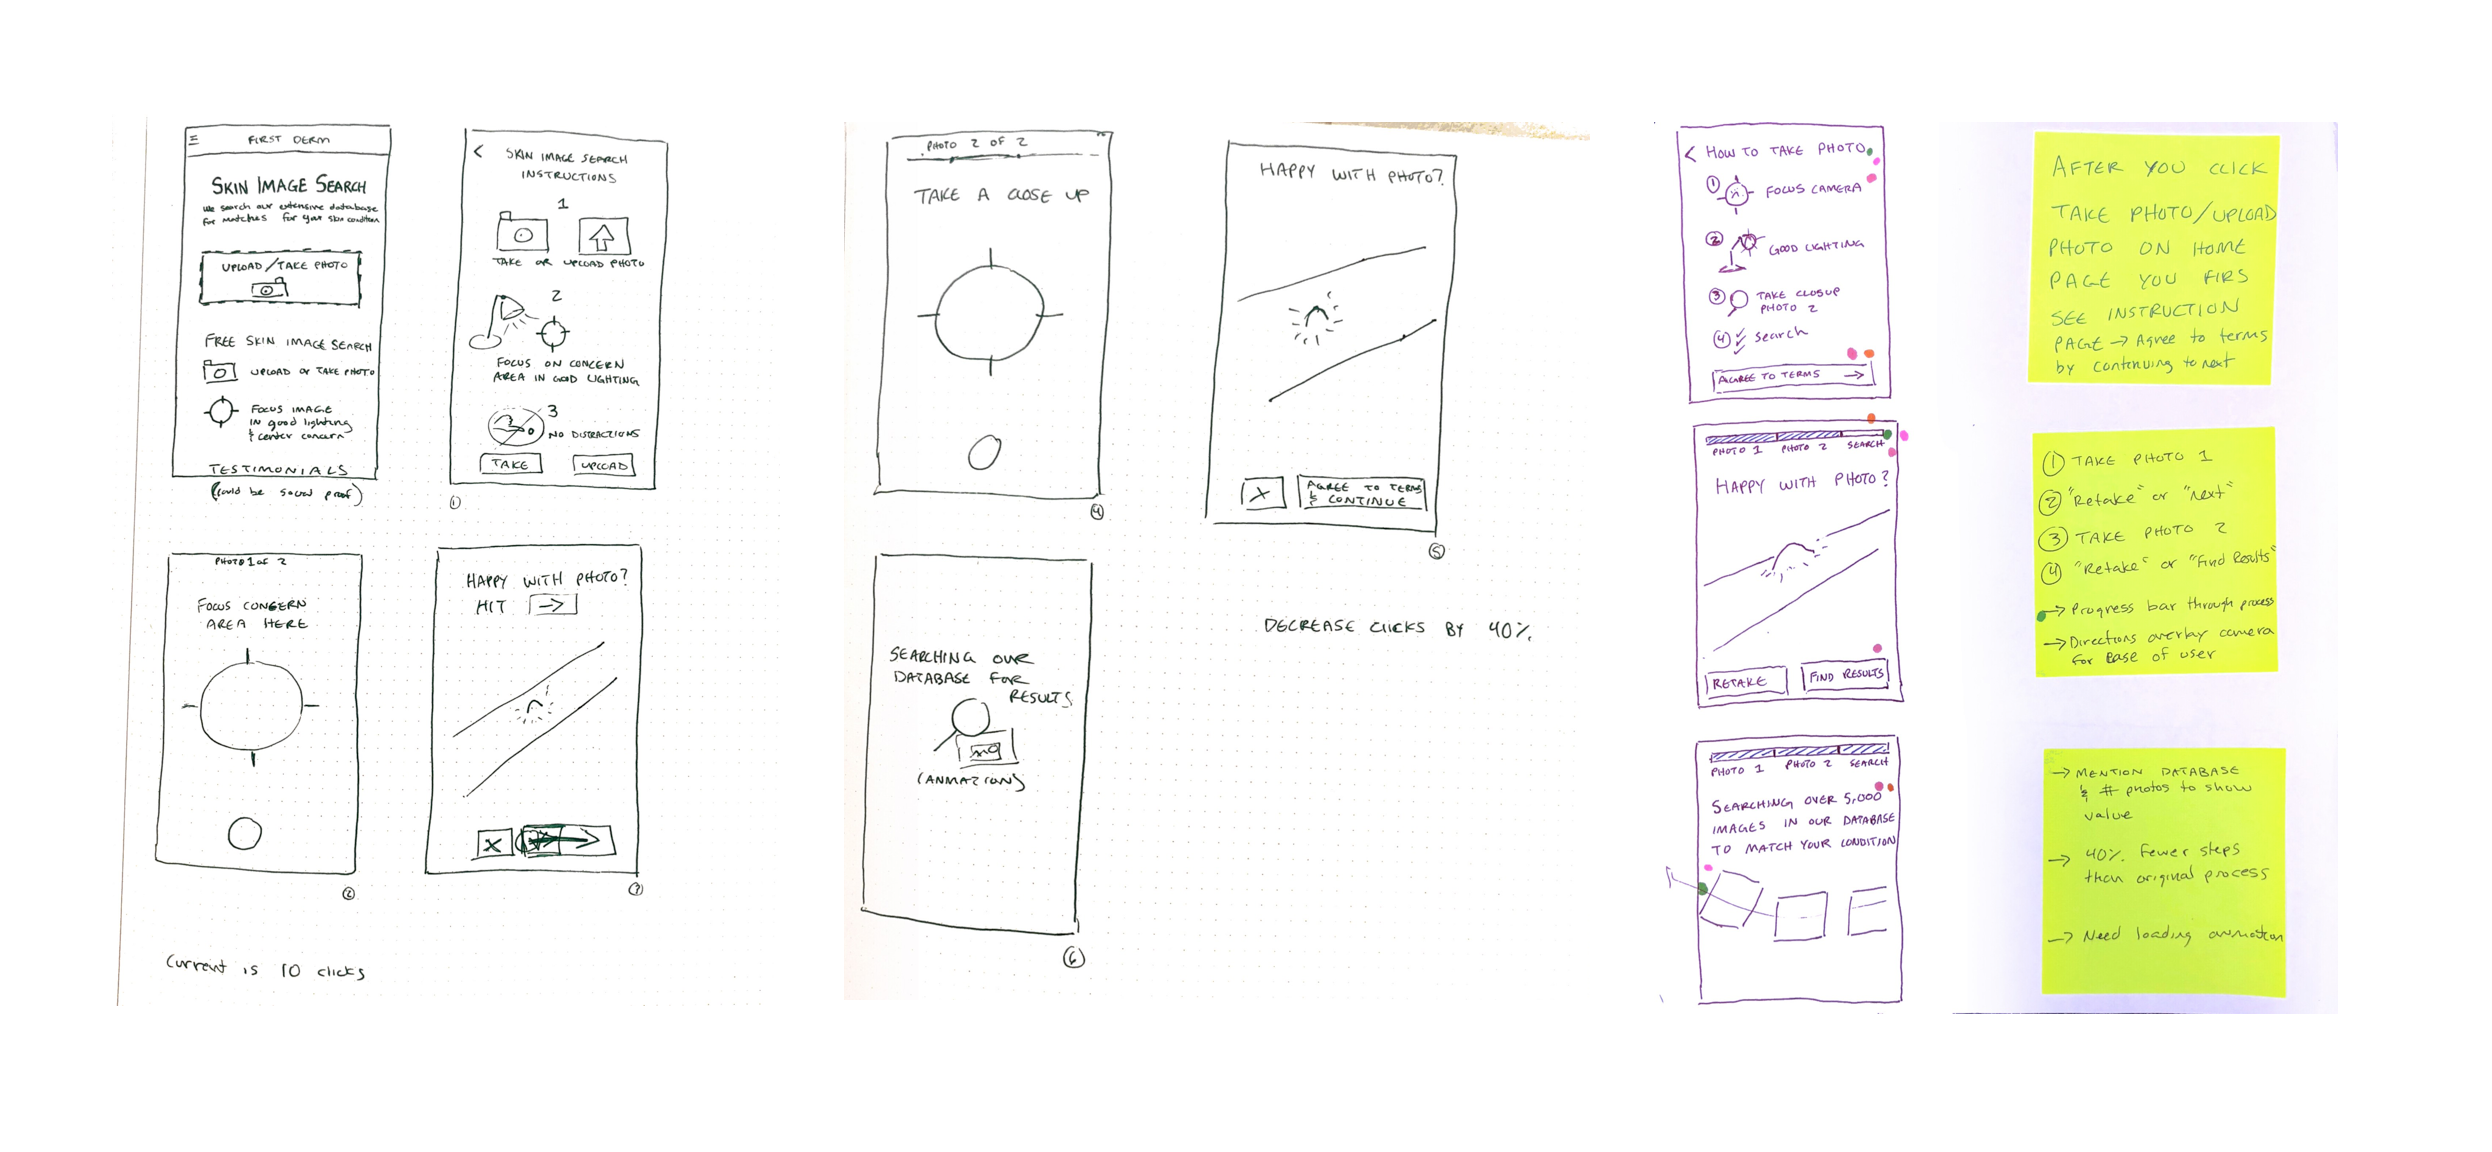 Sketches and a storyboard to present to showcase how the new user flow could work